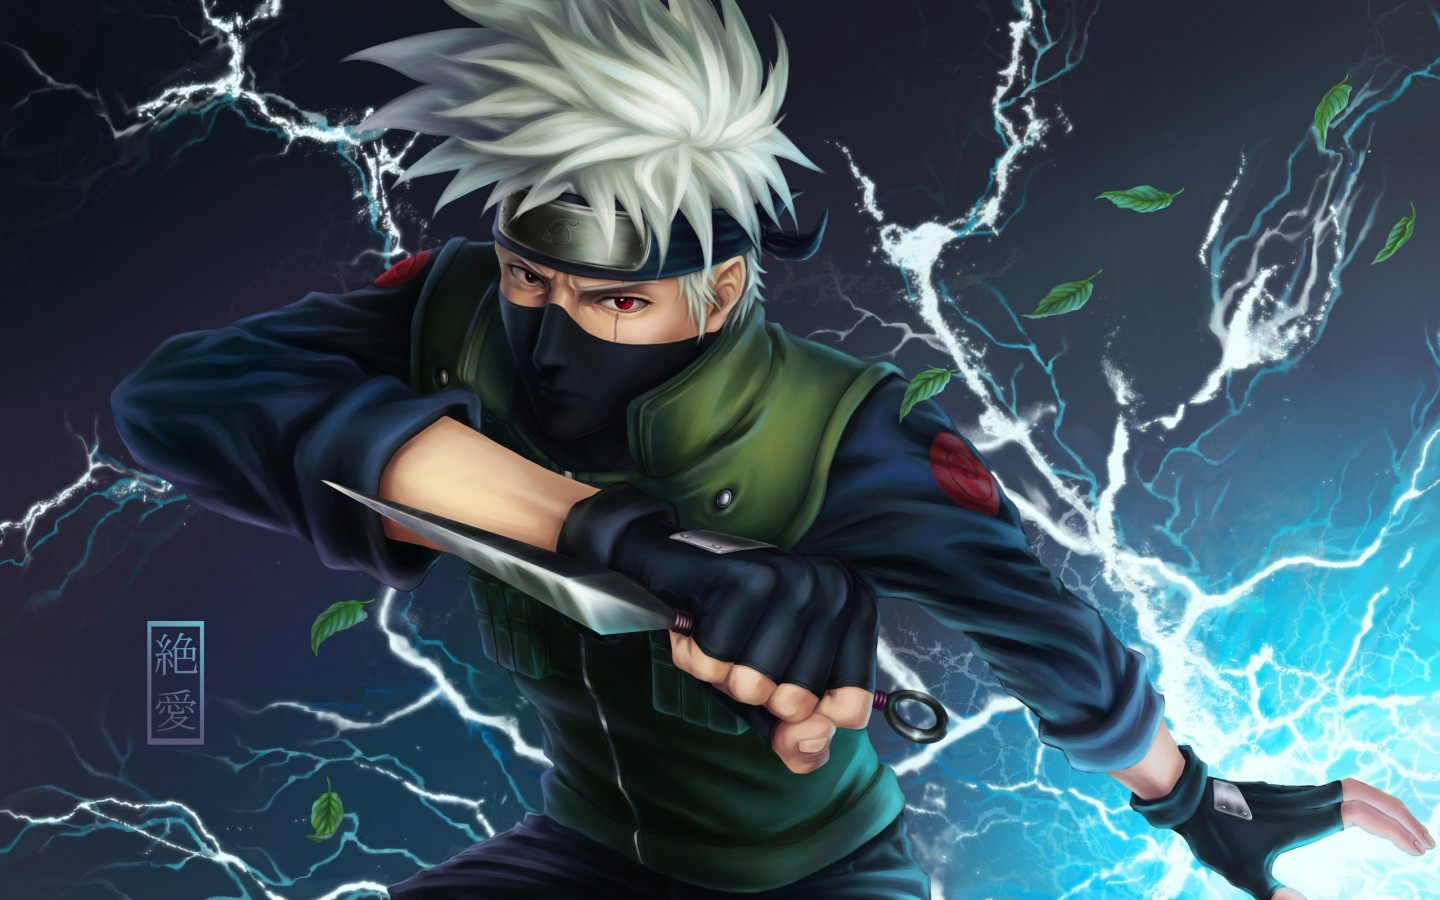 Kakashi Hatake Wallpaper for Desktop 1440x900